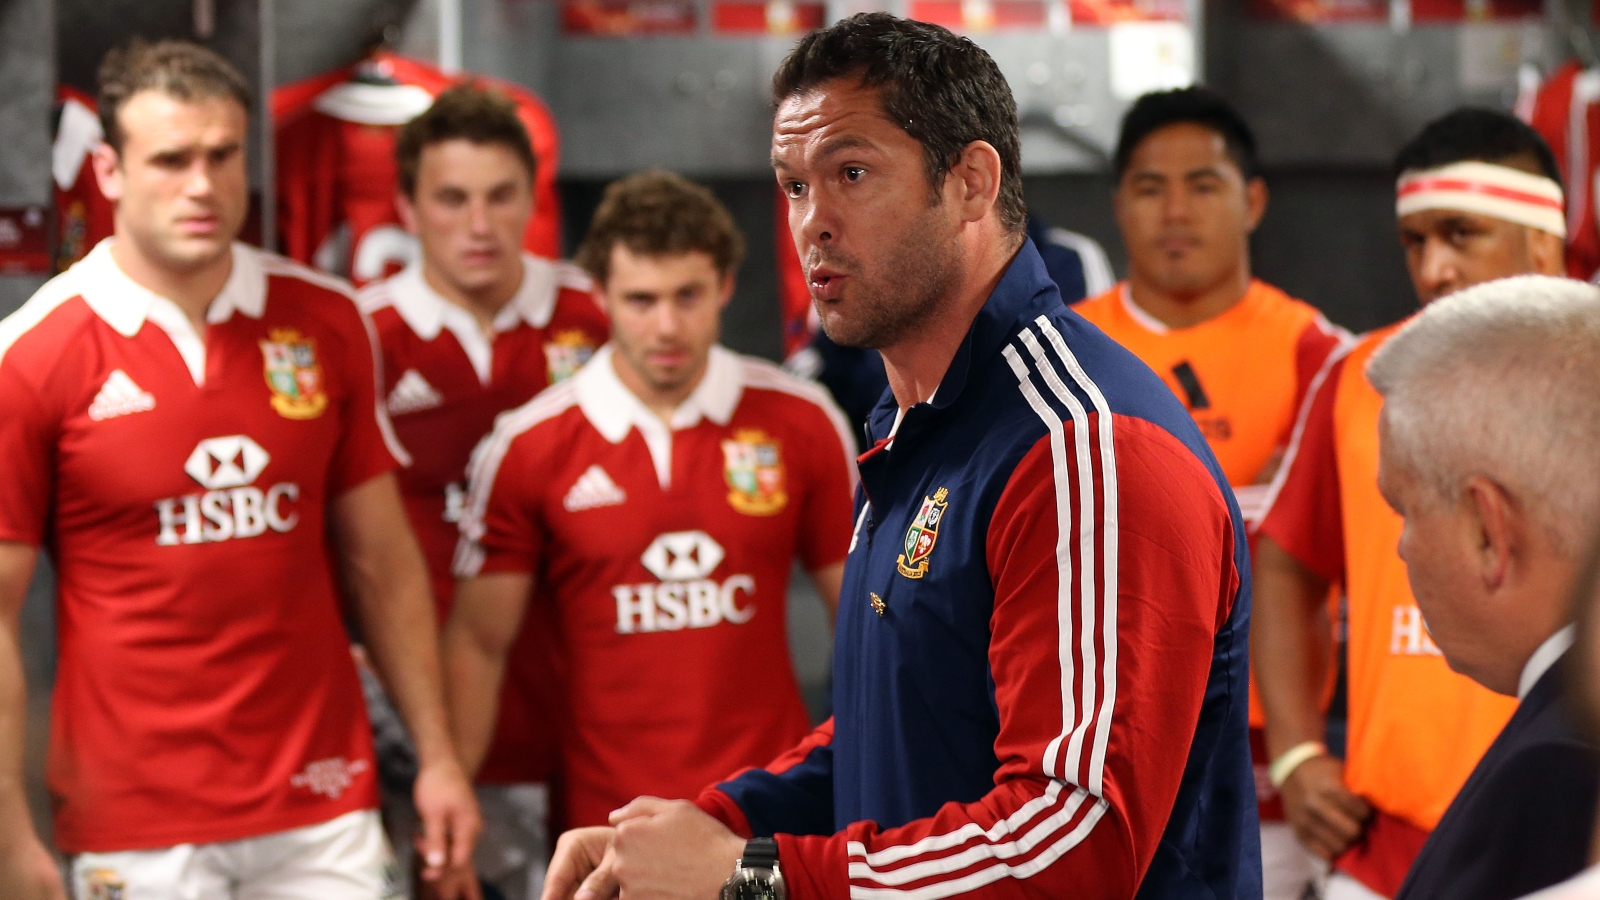 Farrell's speech helps 2013 Lions to history